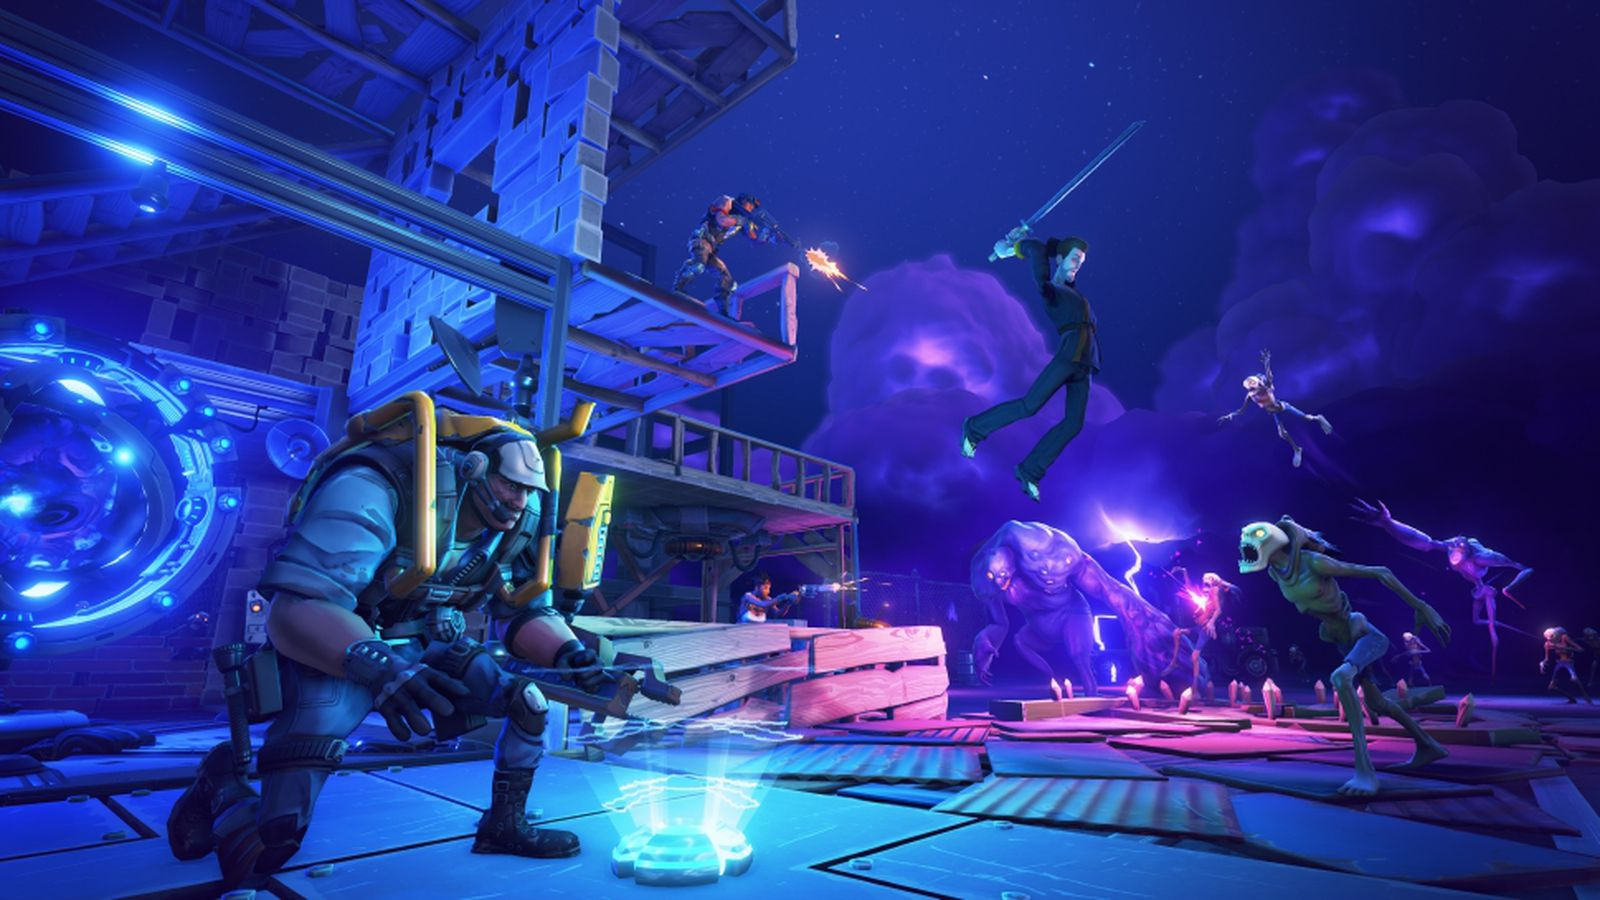 Fortnite Kicks Off Second Closed Alpha With A Livestream This Afternoon Polygon